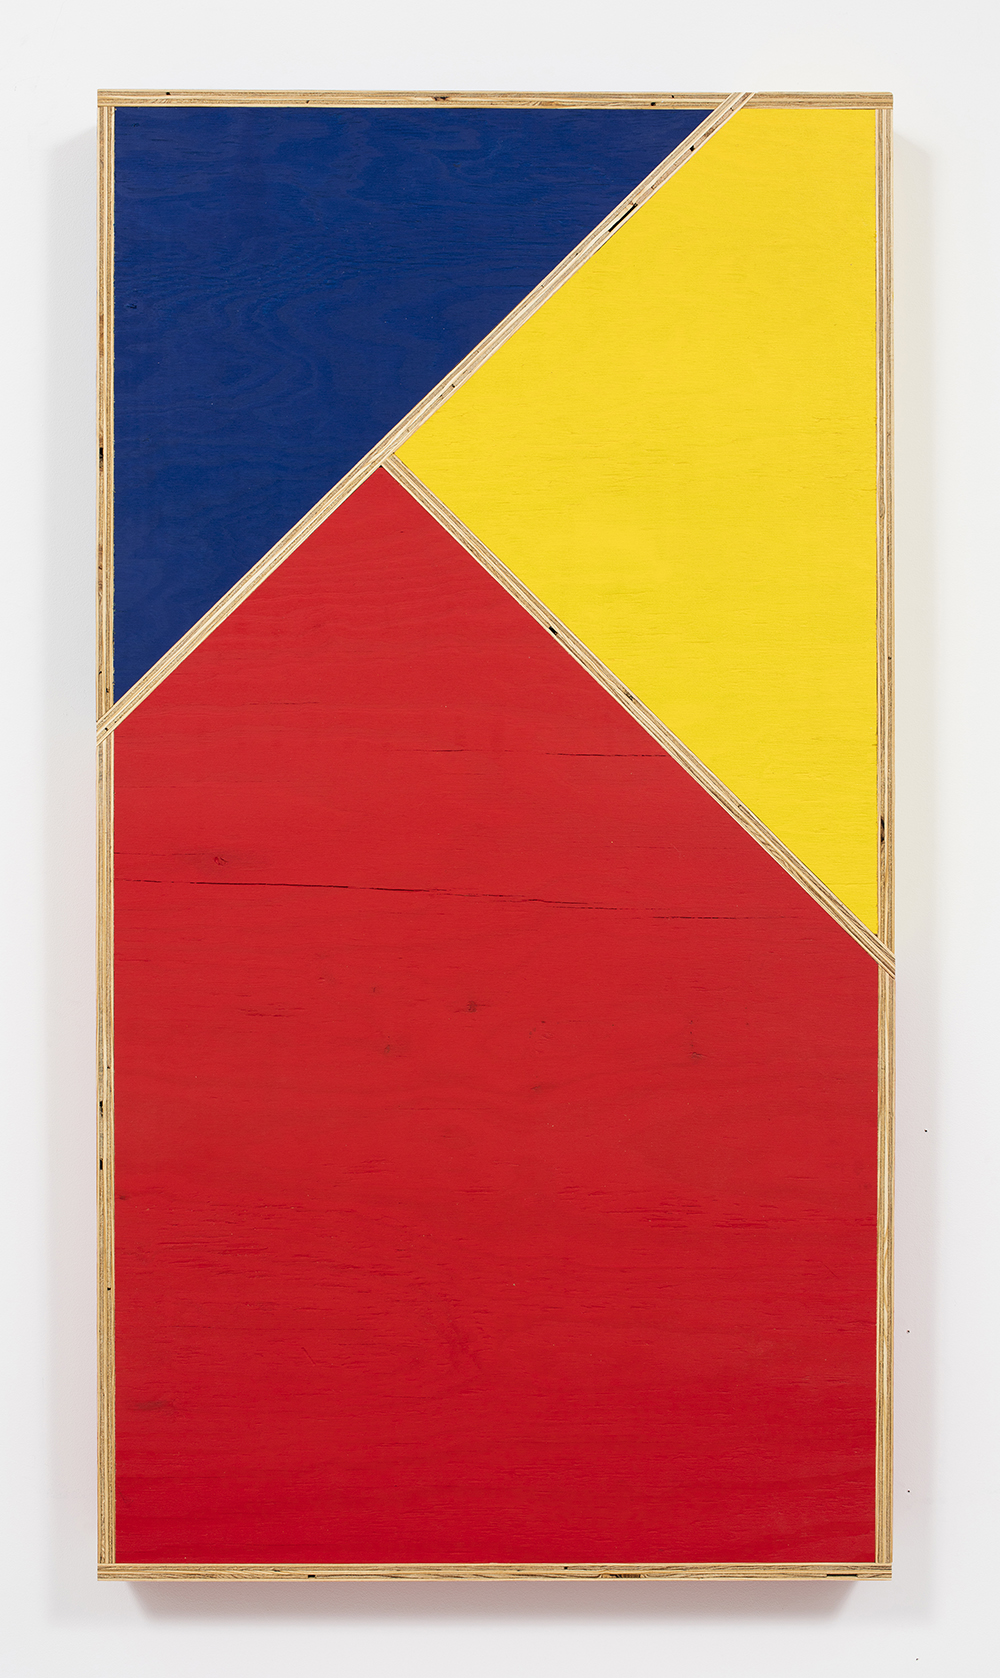 G.T. Pellizzi. <em>Transitional Geometry in Red, Yellow and Blue (Figure 34)</em>, 2016. Eggshell acrylic on plywood, 60 x 32 x 4 inches